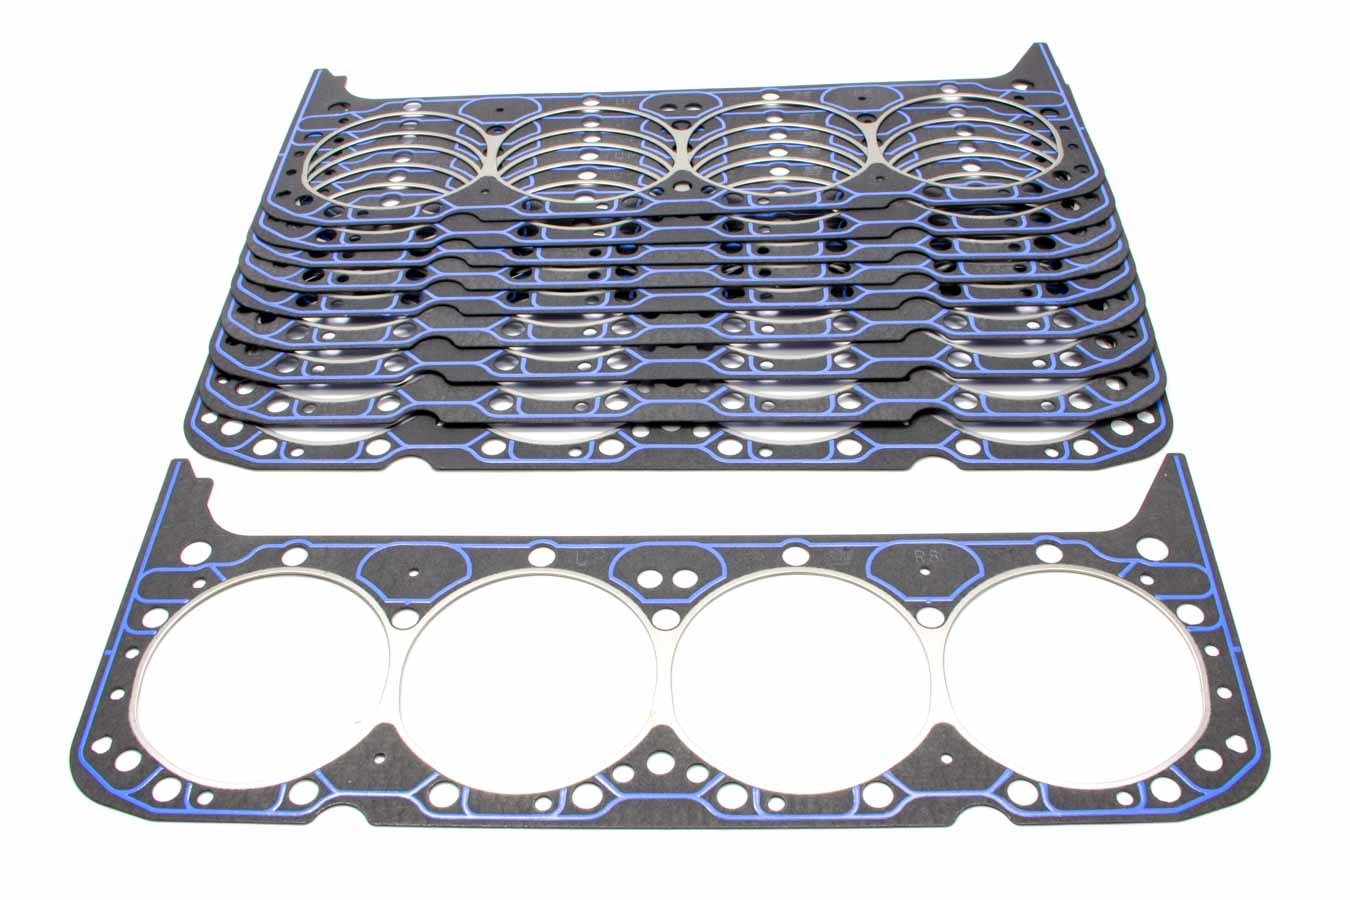 Fel-Pro 1003B Cylinder Head Gasket, 4.166 in Bore, 0.041 in Compression Thickness, Steel Core Laminate, Small Block Chevy, Set of 10